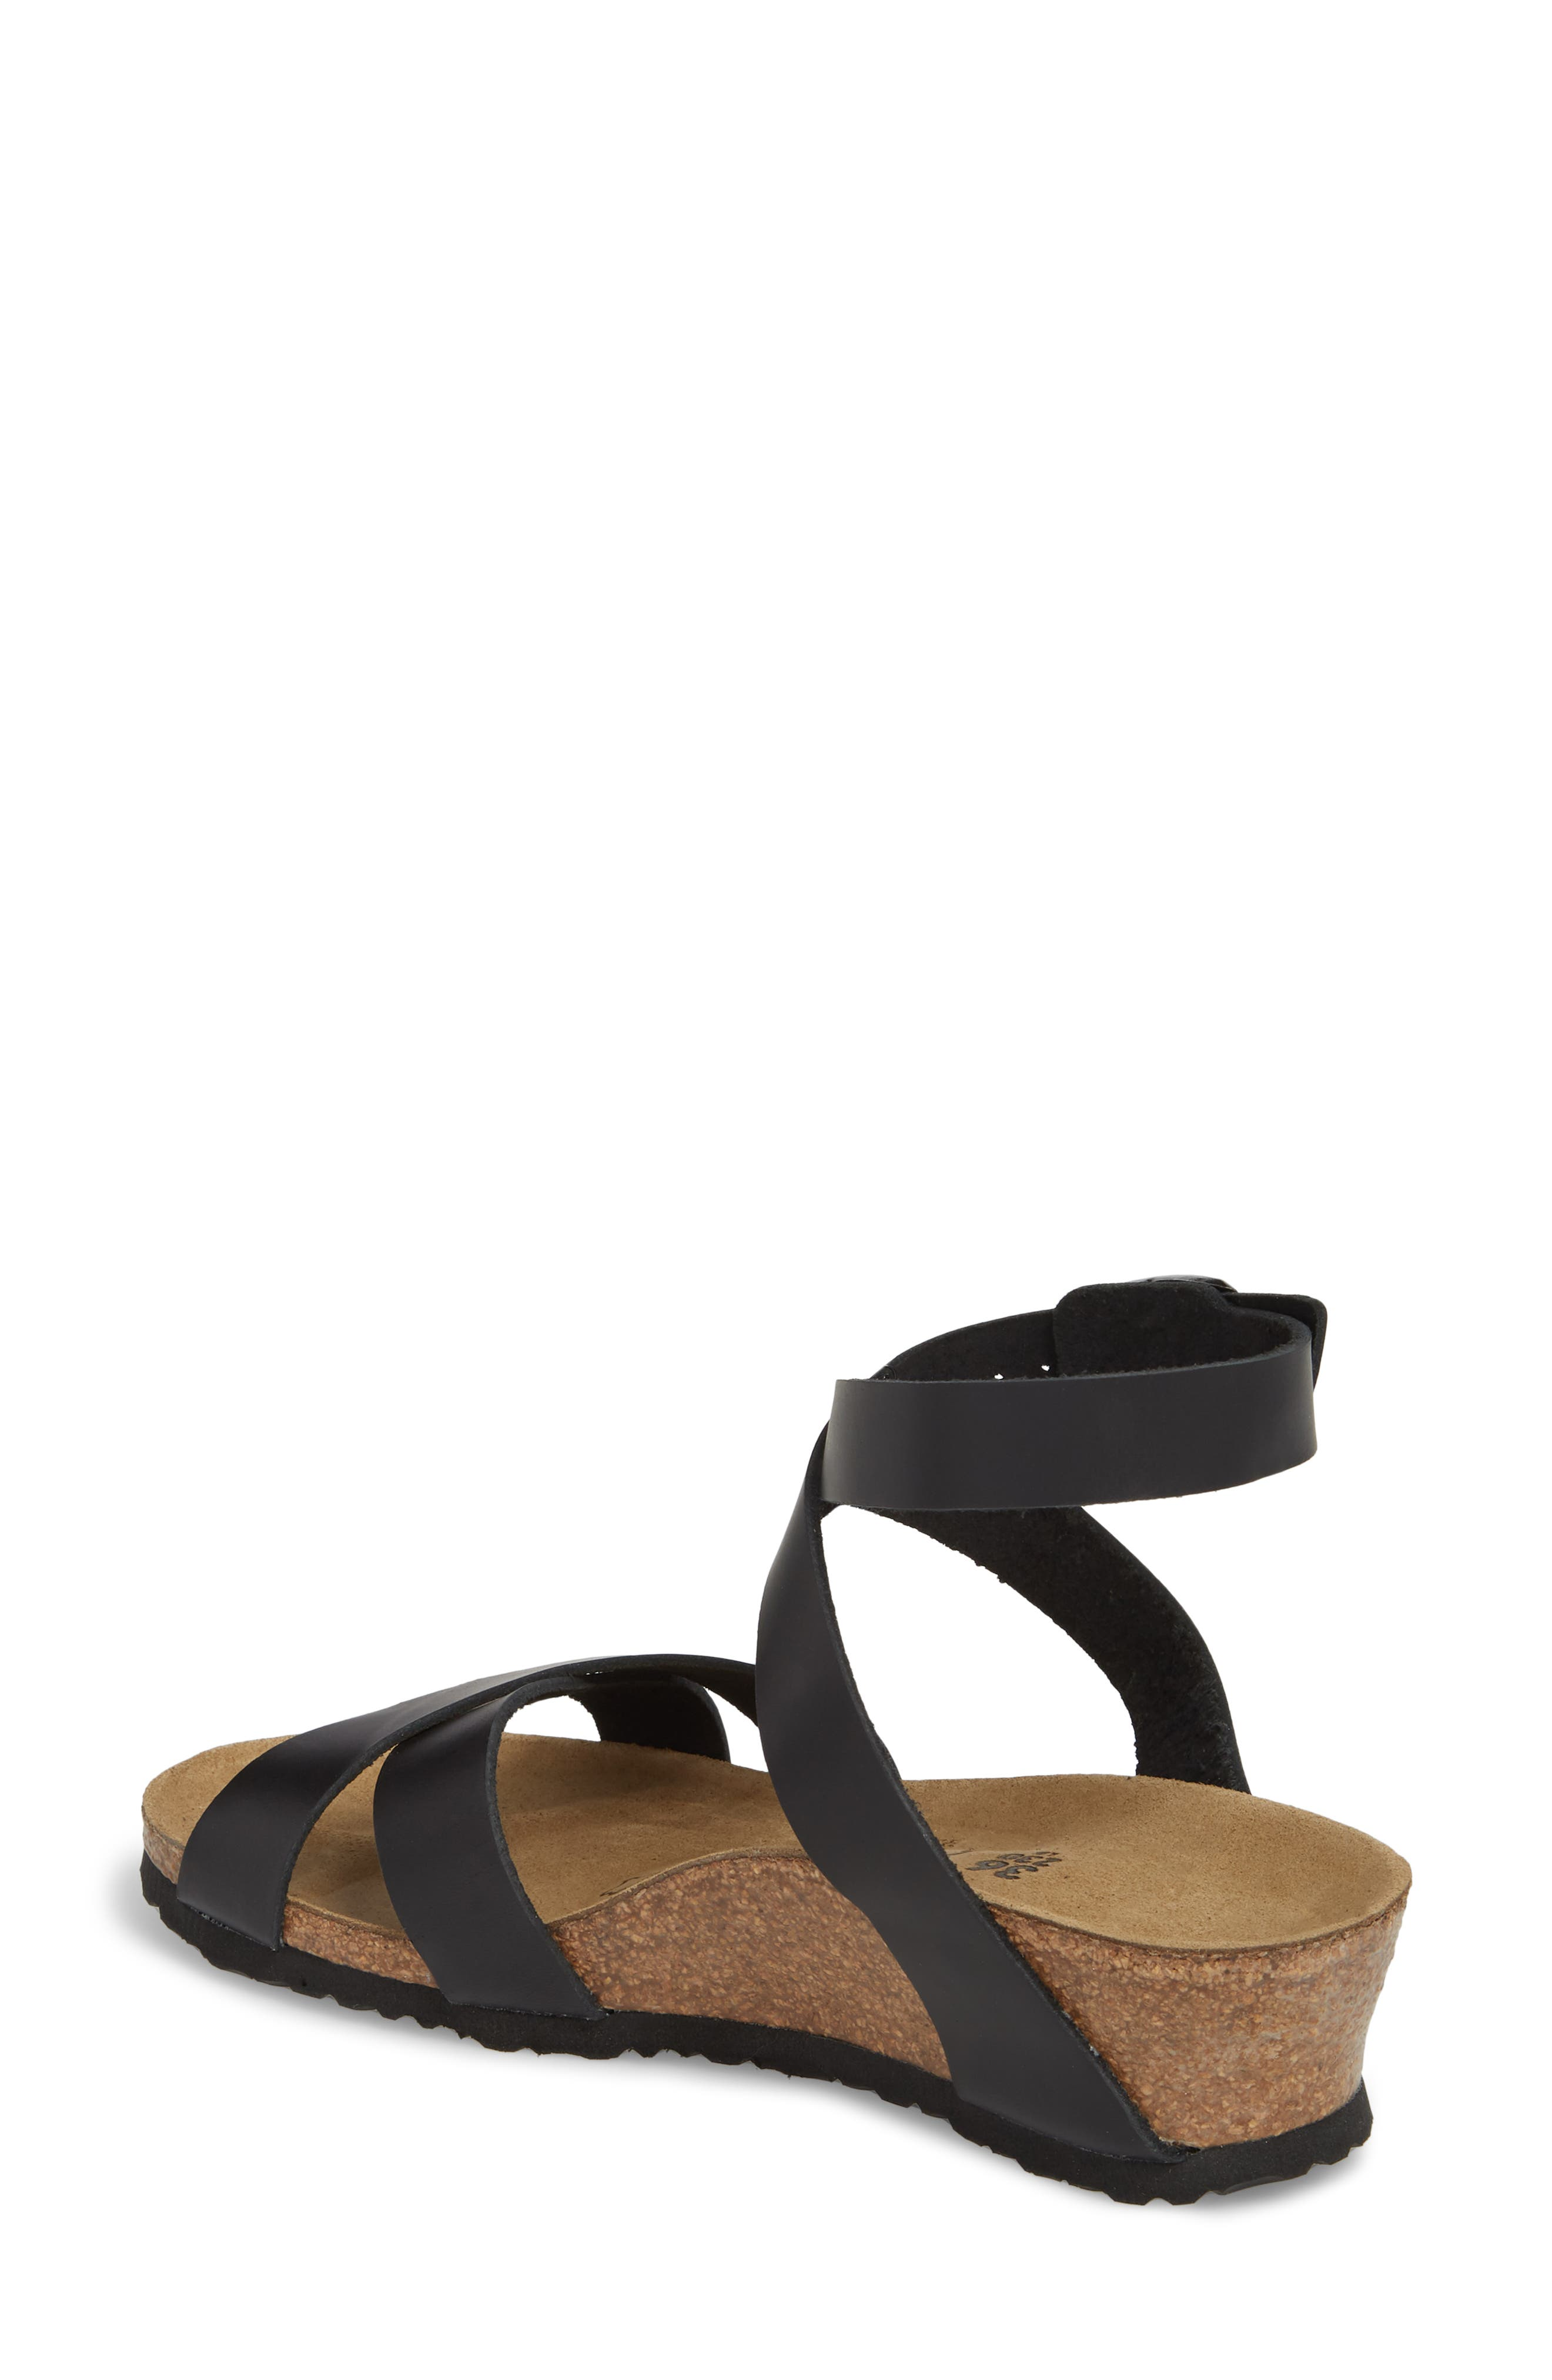 Papillio by Birkenstock Lola Wedge Sandal,                             Alternate thumbnail 2, color,                             Black Leather